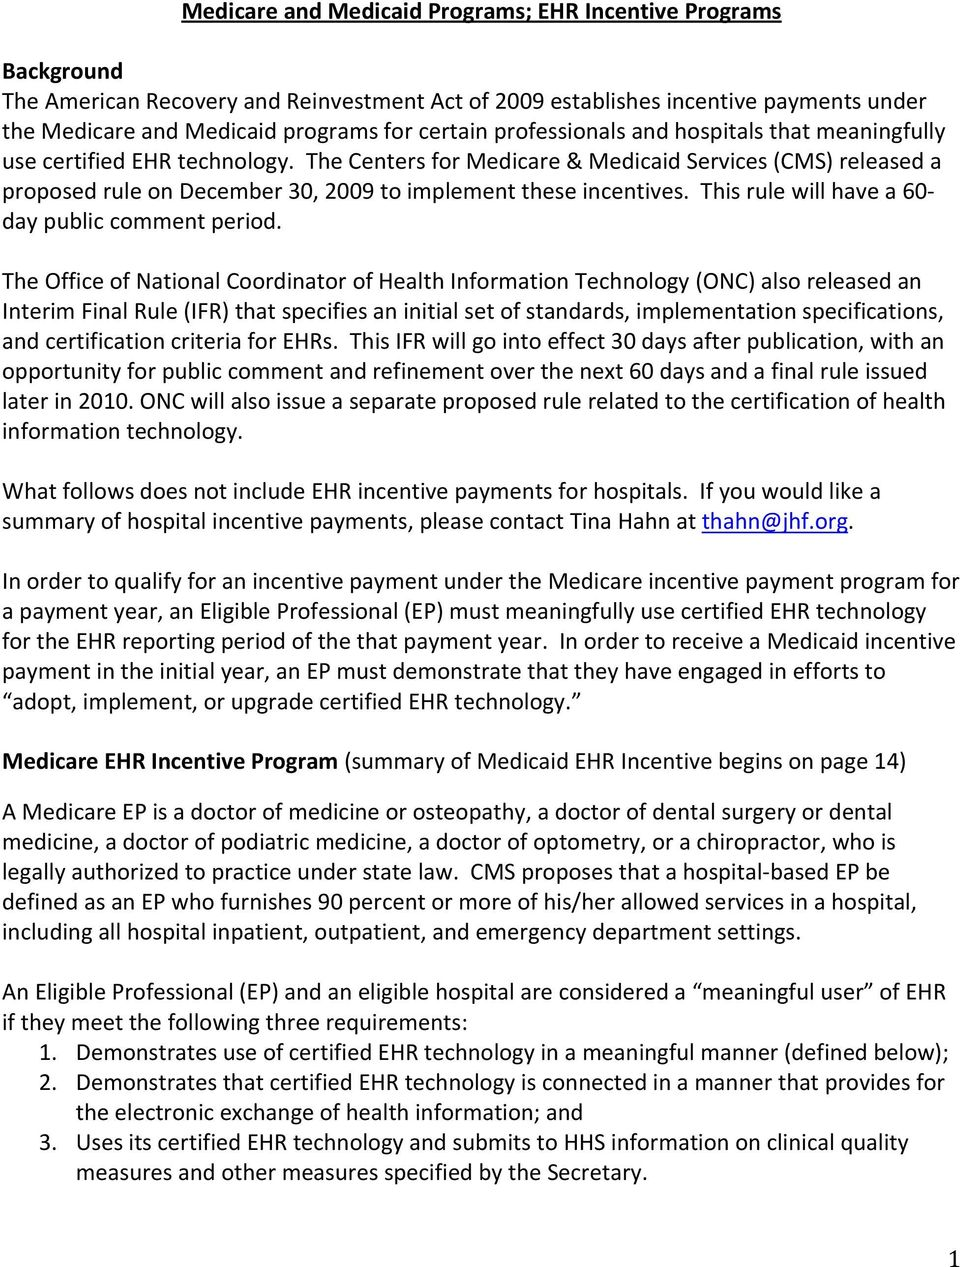 The Centers for Medicare & Medicaid Services (CMS) released a proposed rule on December 30, 2009 to implement these incentives. This rule will have a 60 day public comment period.